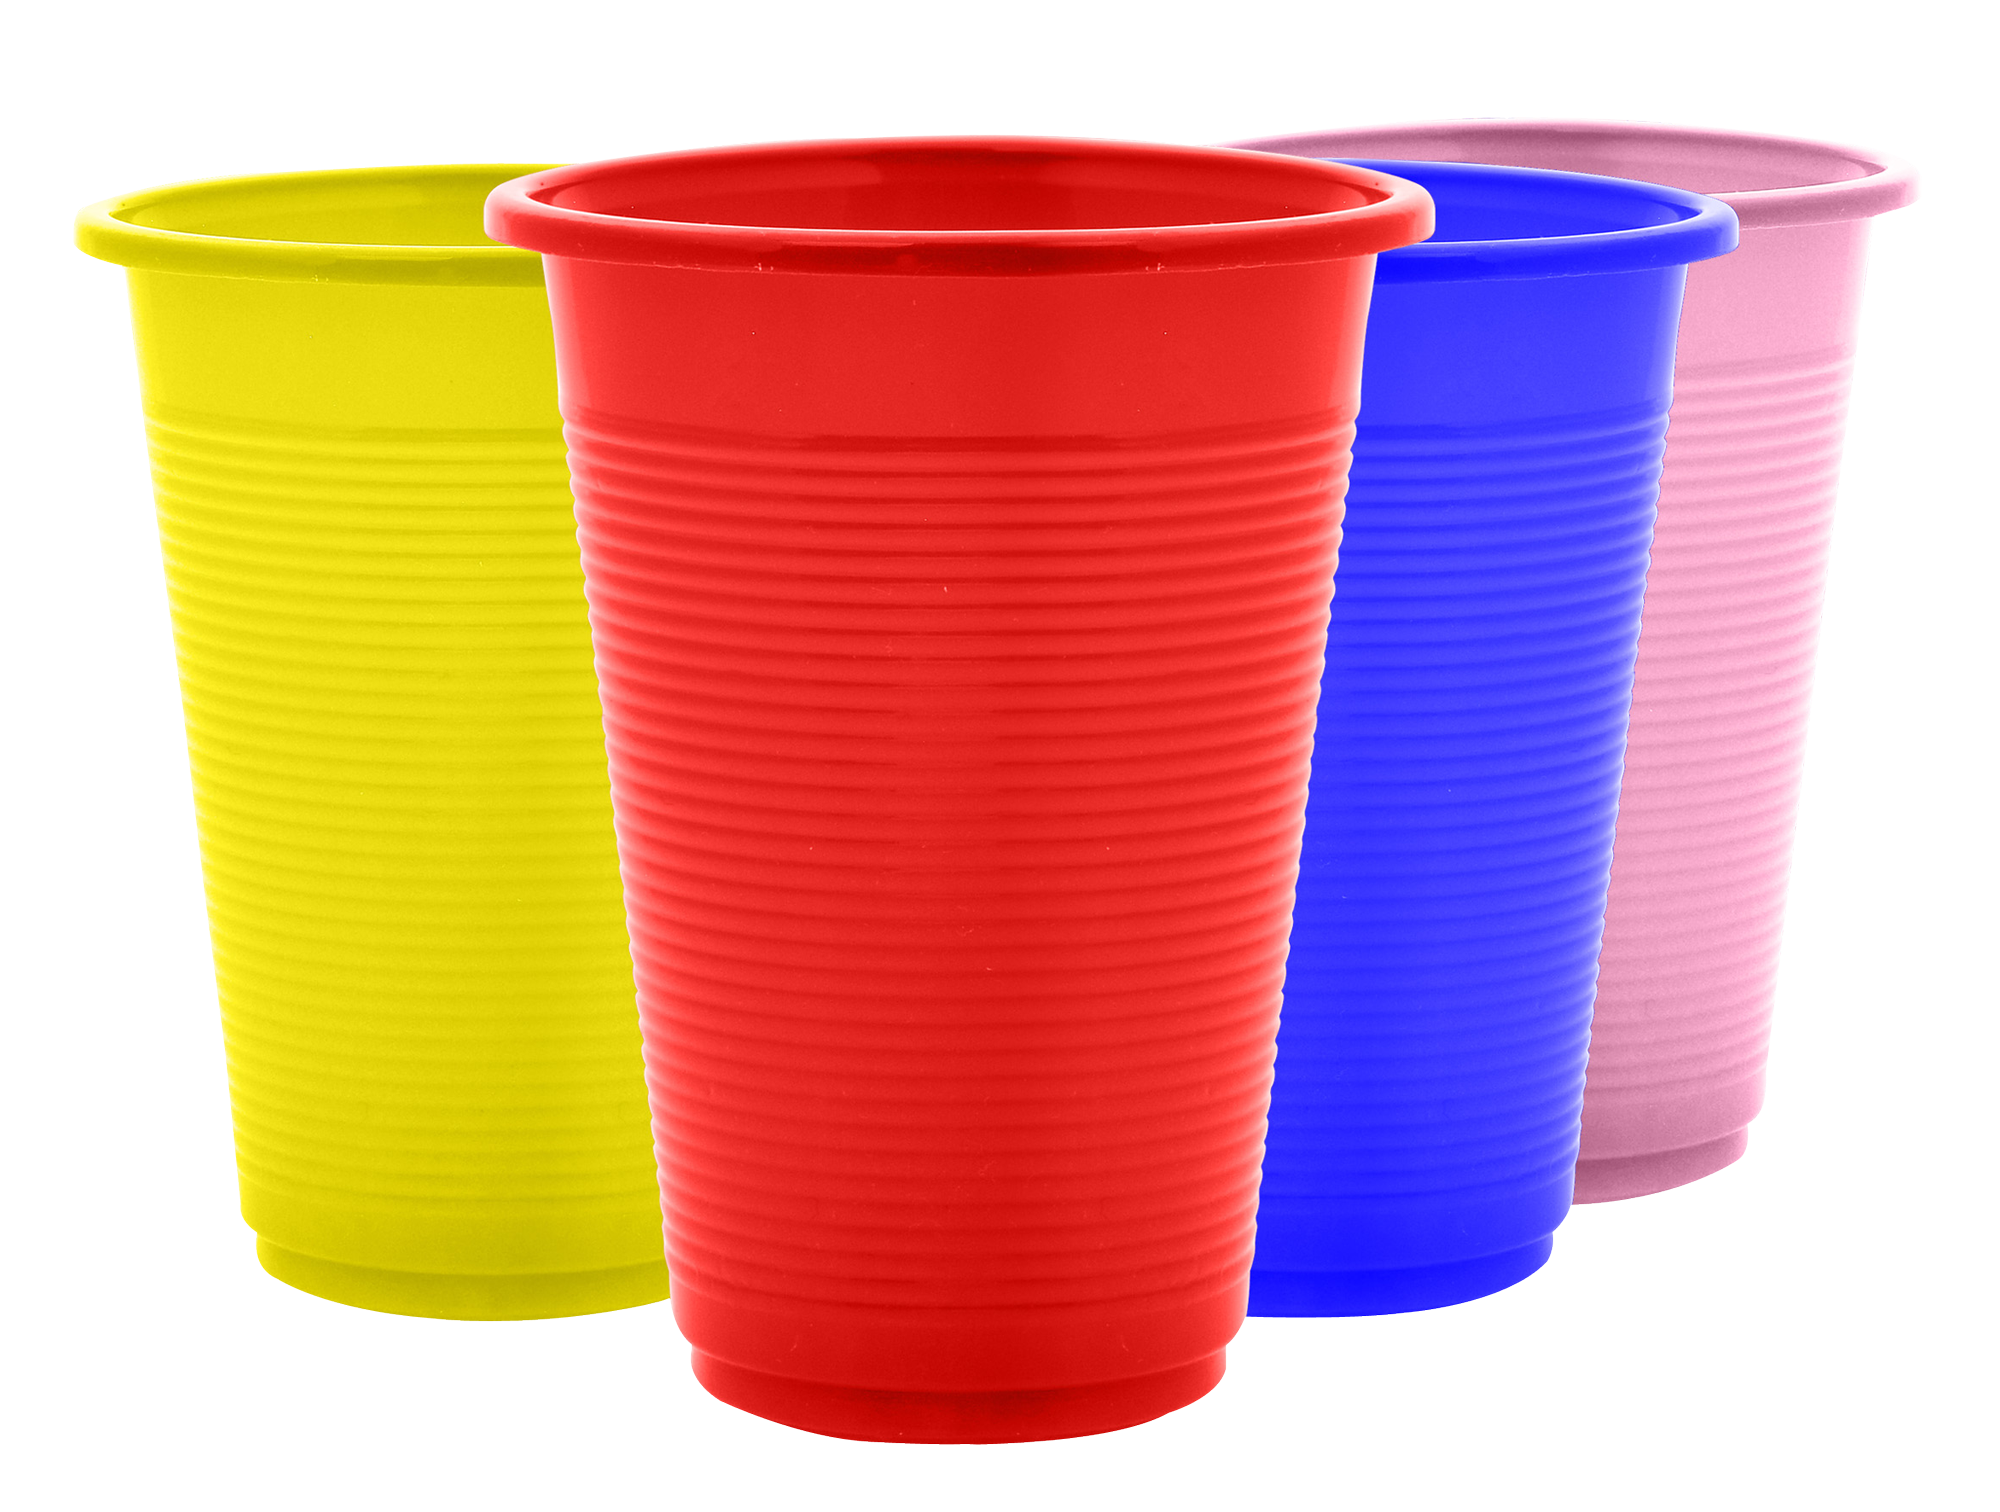 Plastic Cups PNG Image.